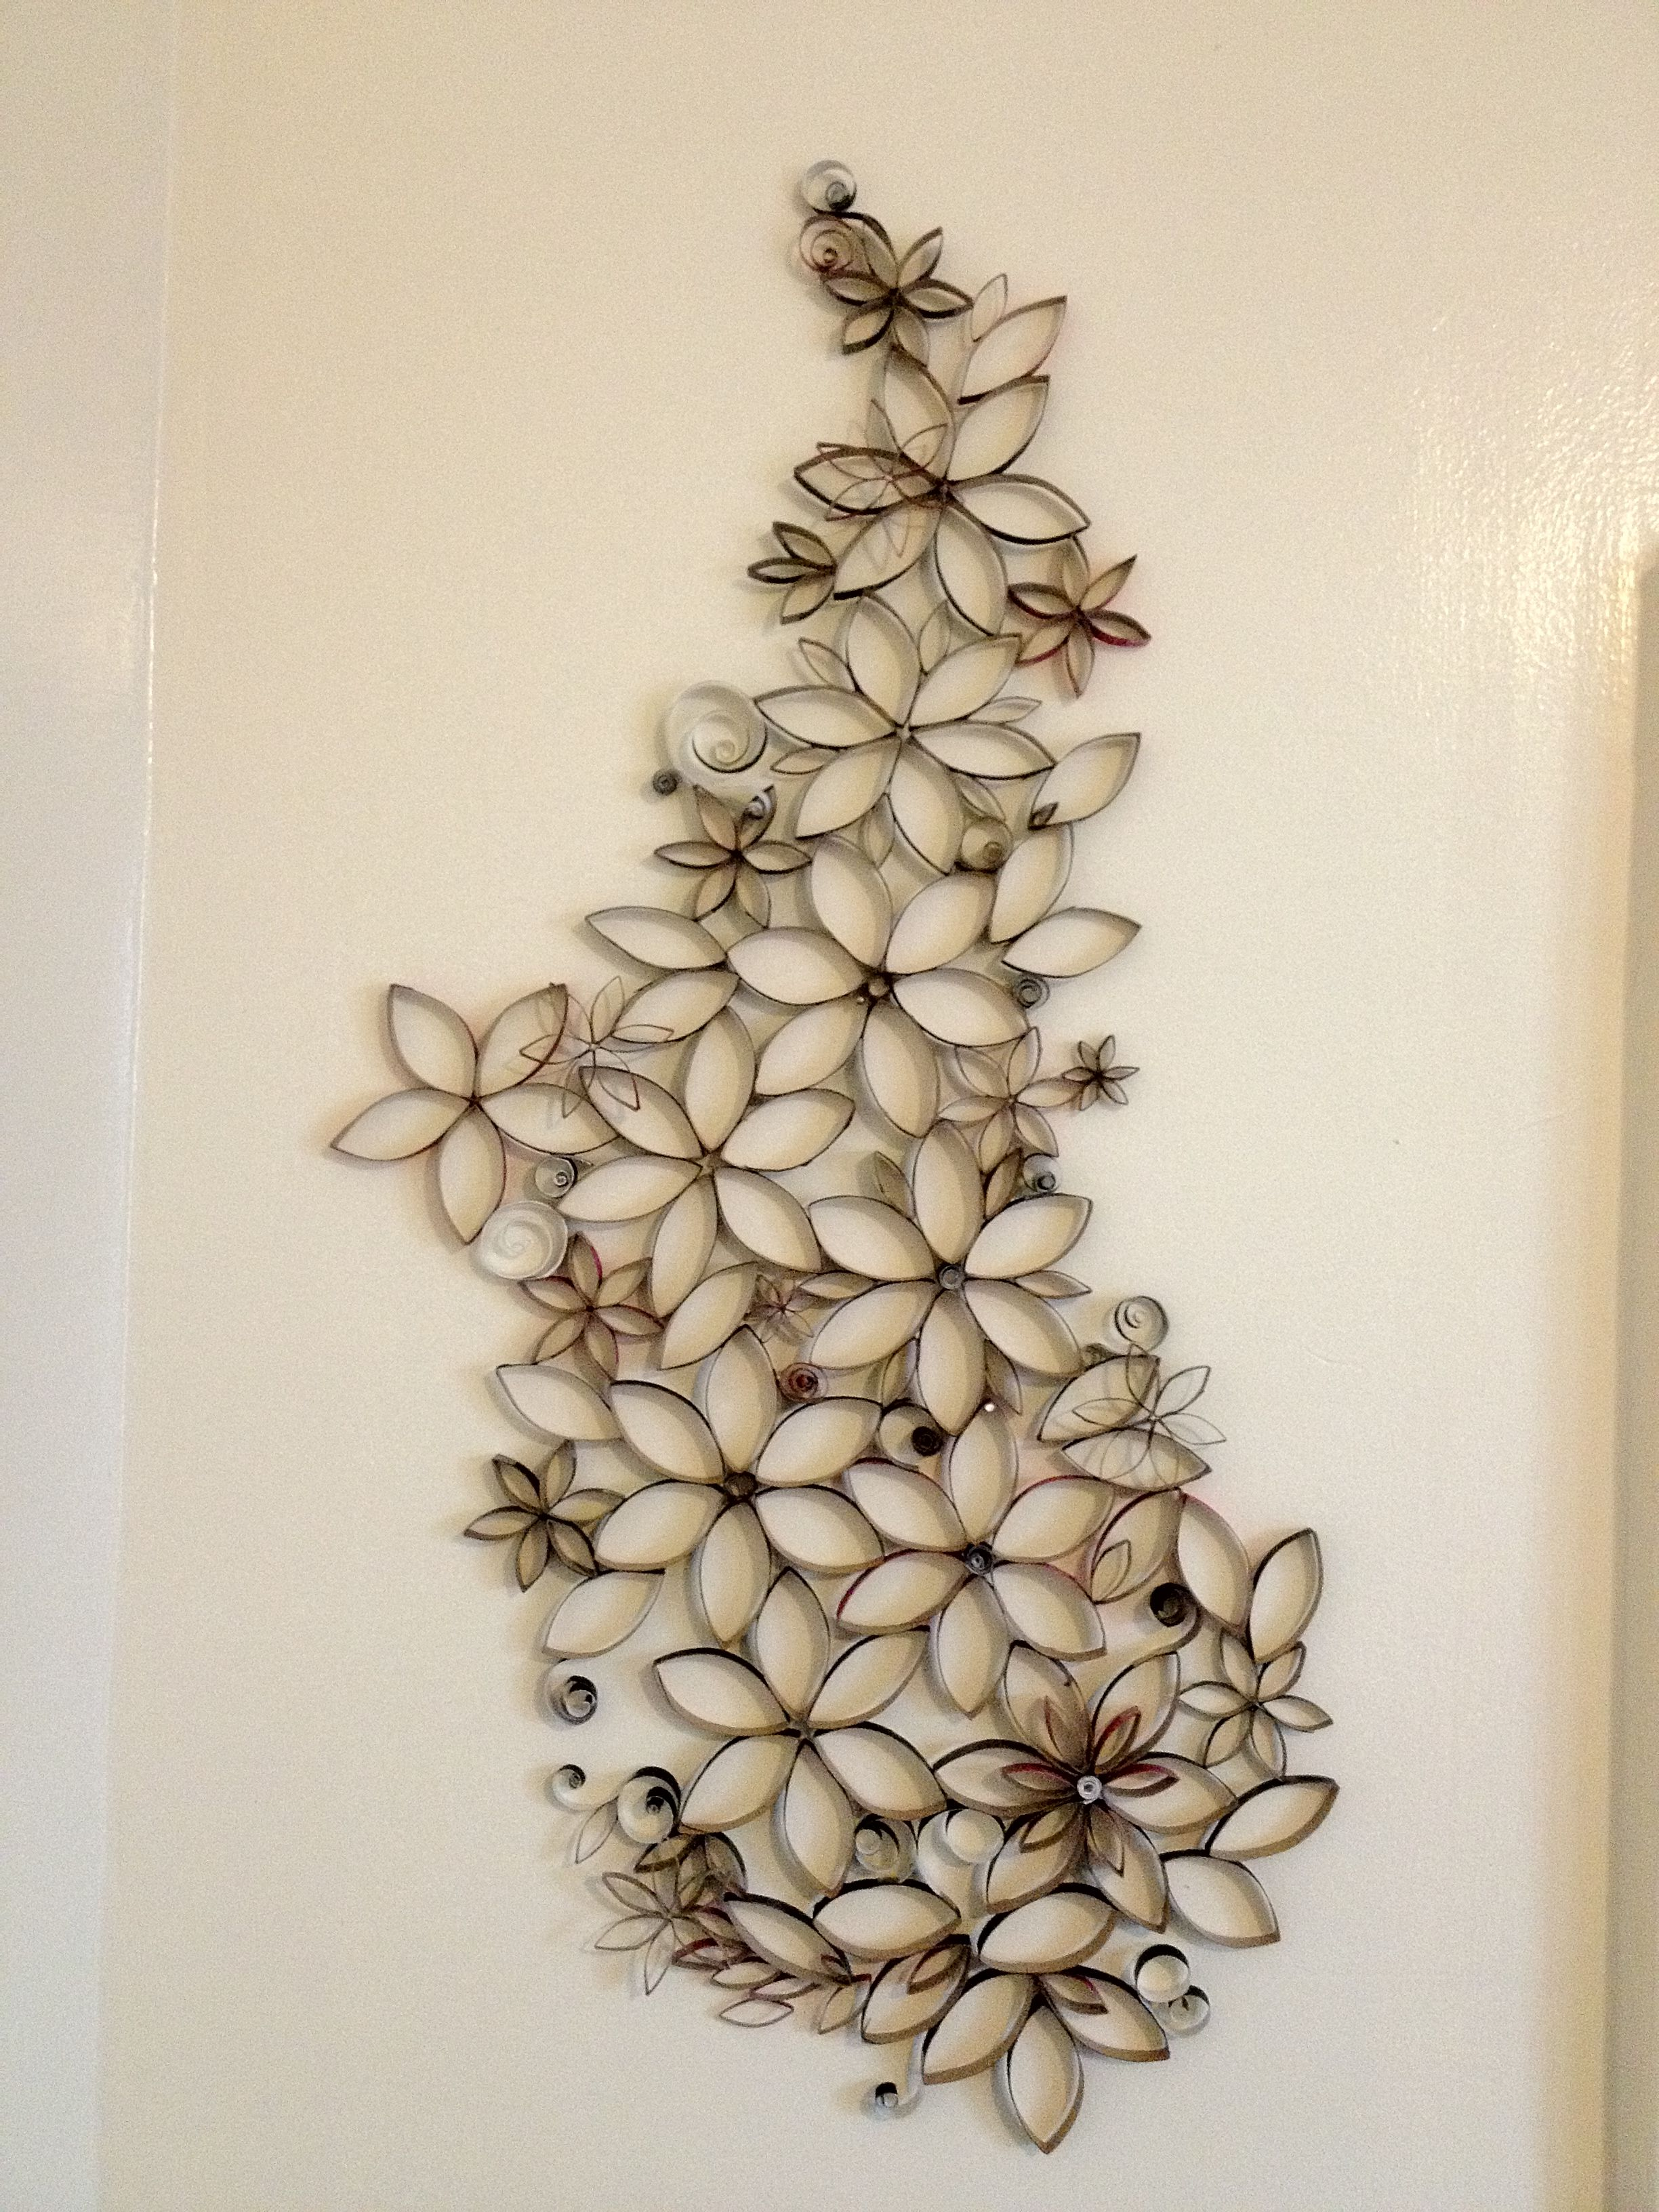 Great Wall Art Made From Upcycled Toilet Paper Rolls  Dip In Plaster Of Paris?